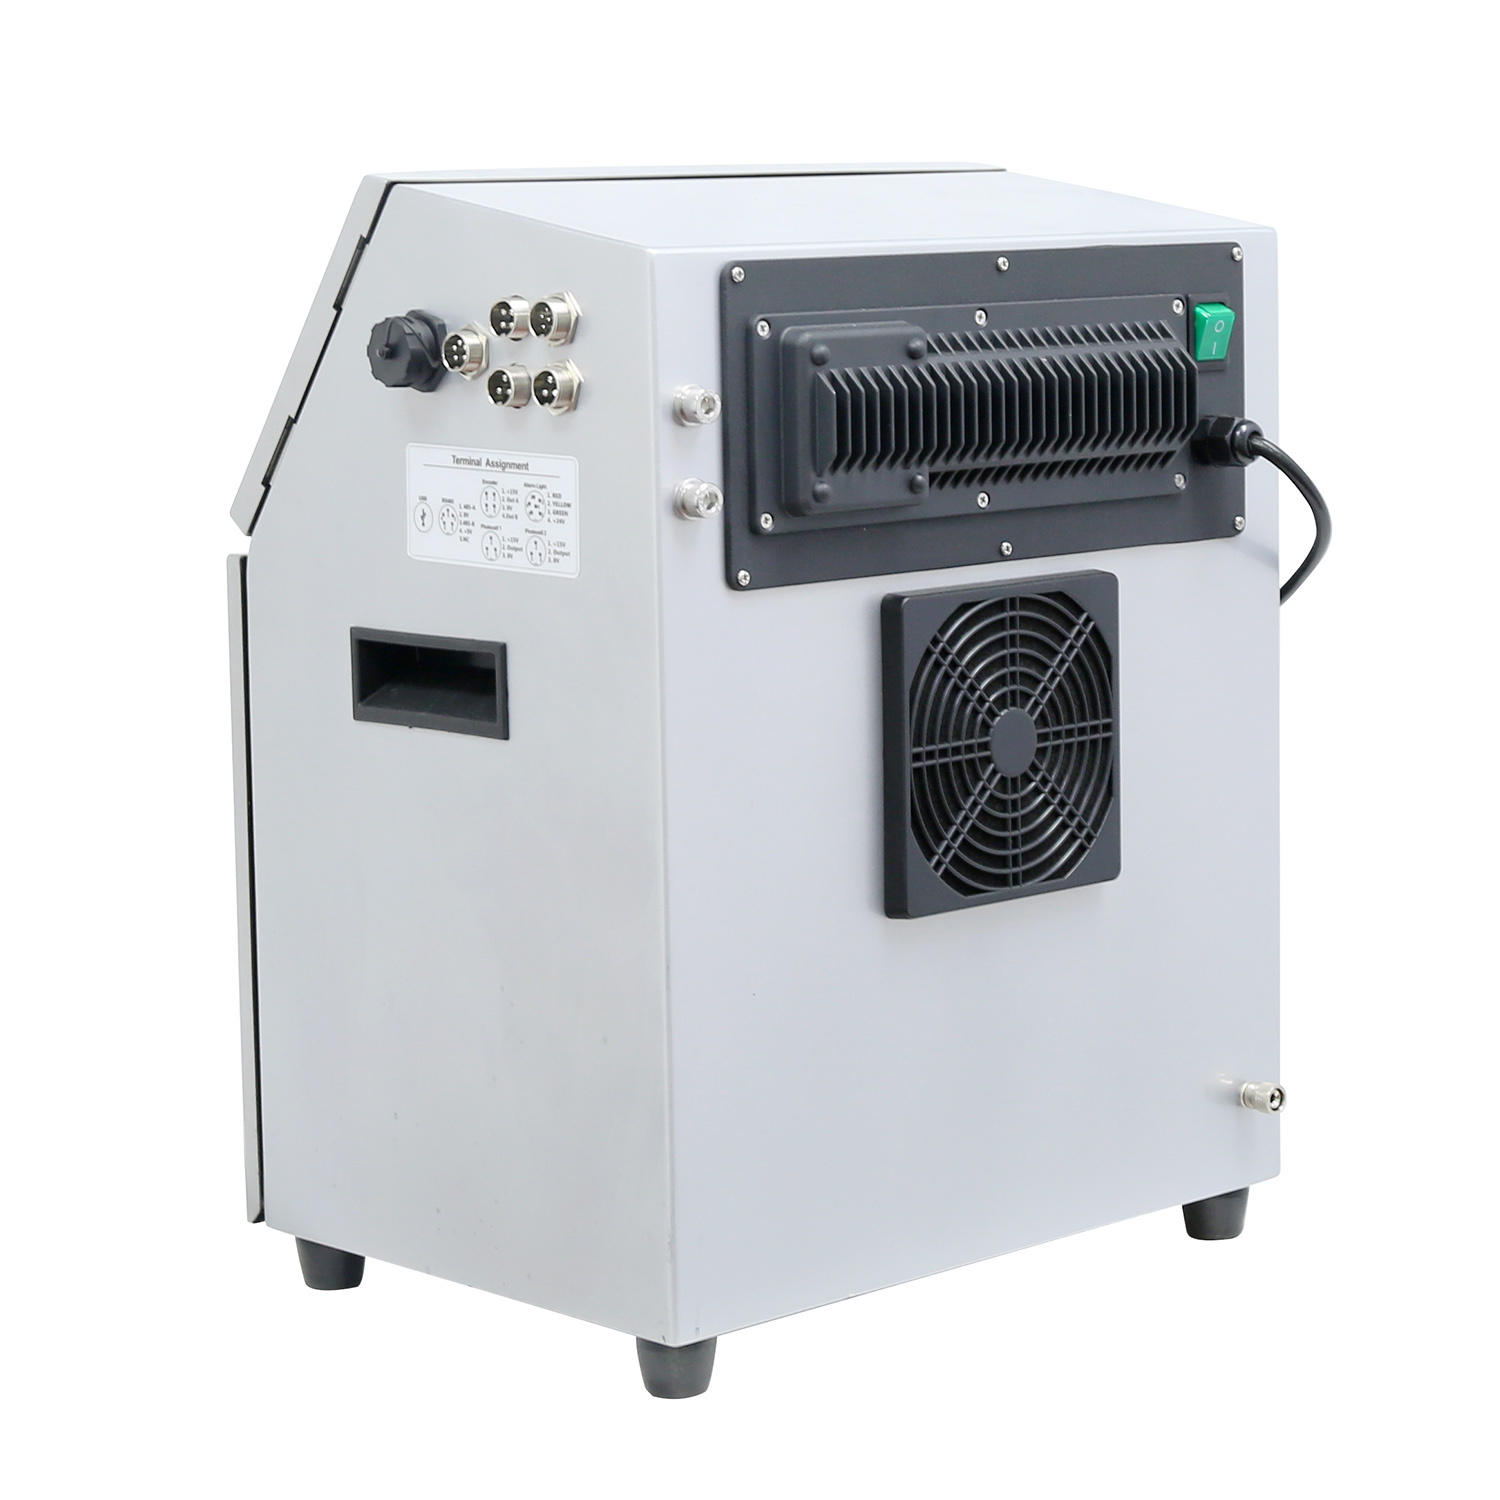 Lead Tech High Speed Digital Touch Screen Qr Code Cij Printing Machine for Cables, PVC Pet Bottles